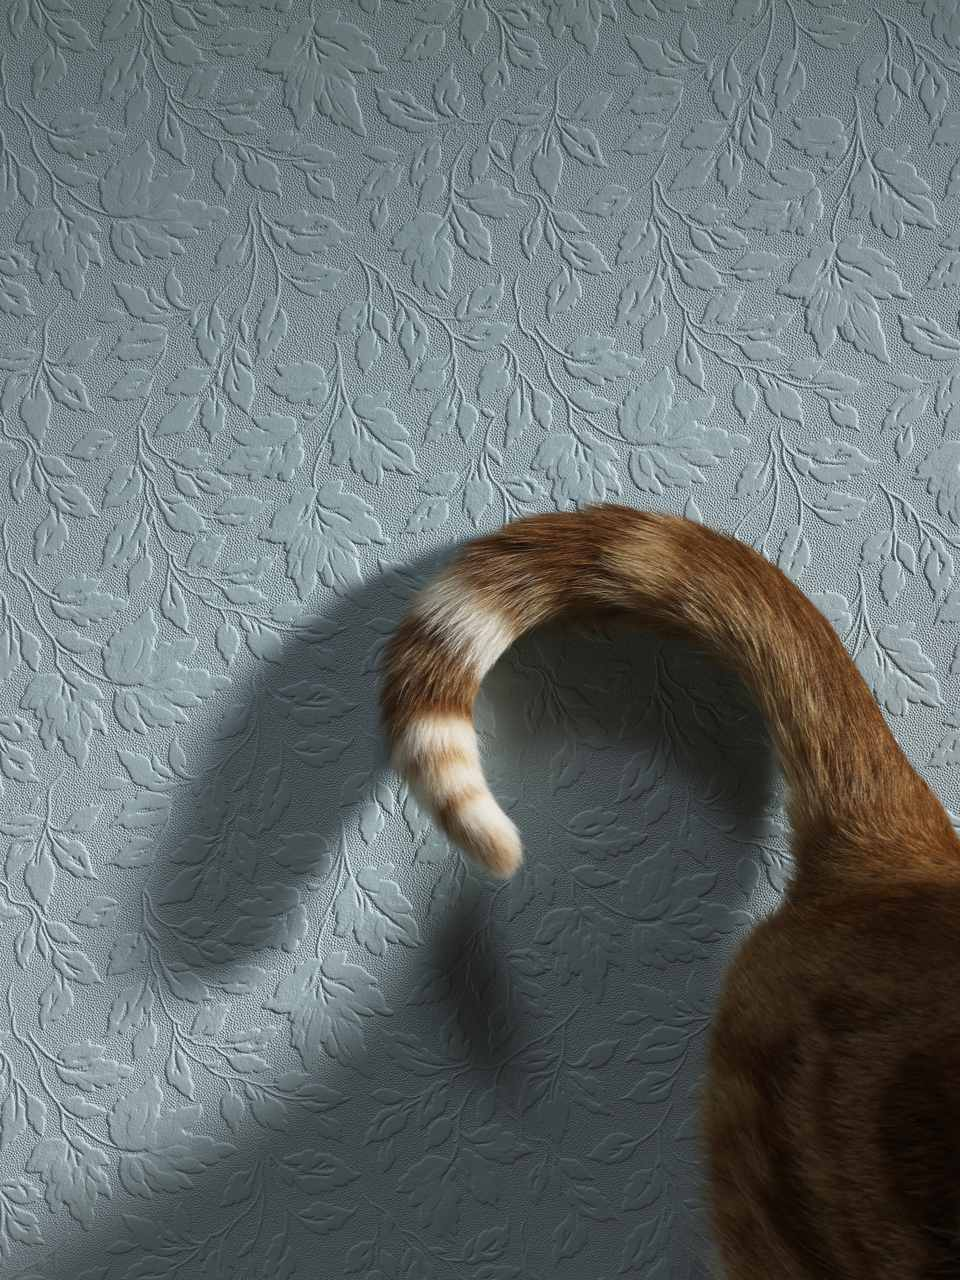 Tail of cat, close-up